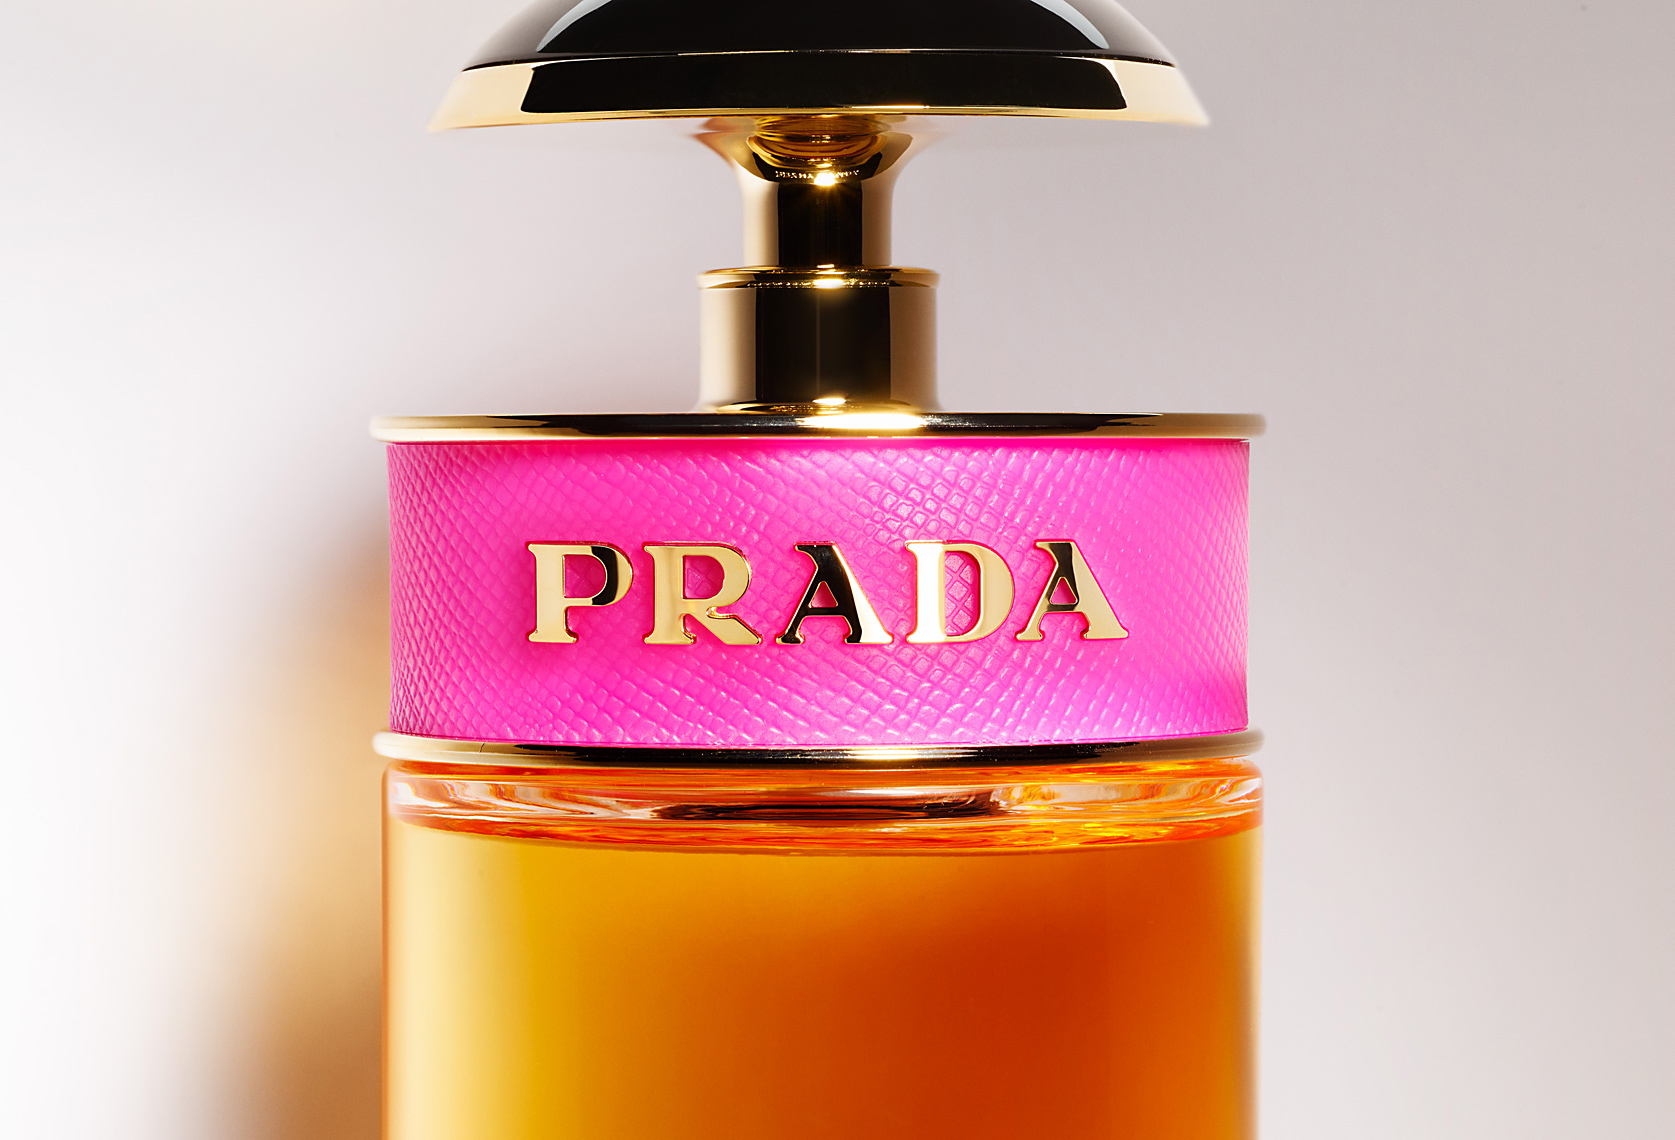 FRAGRANCE_DEW_64492_PRADA_c_bottle